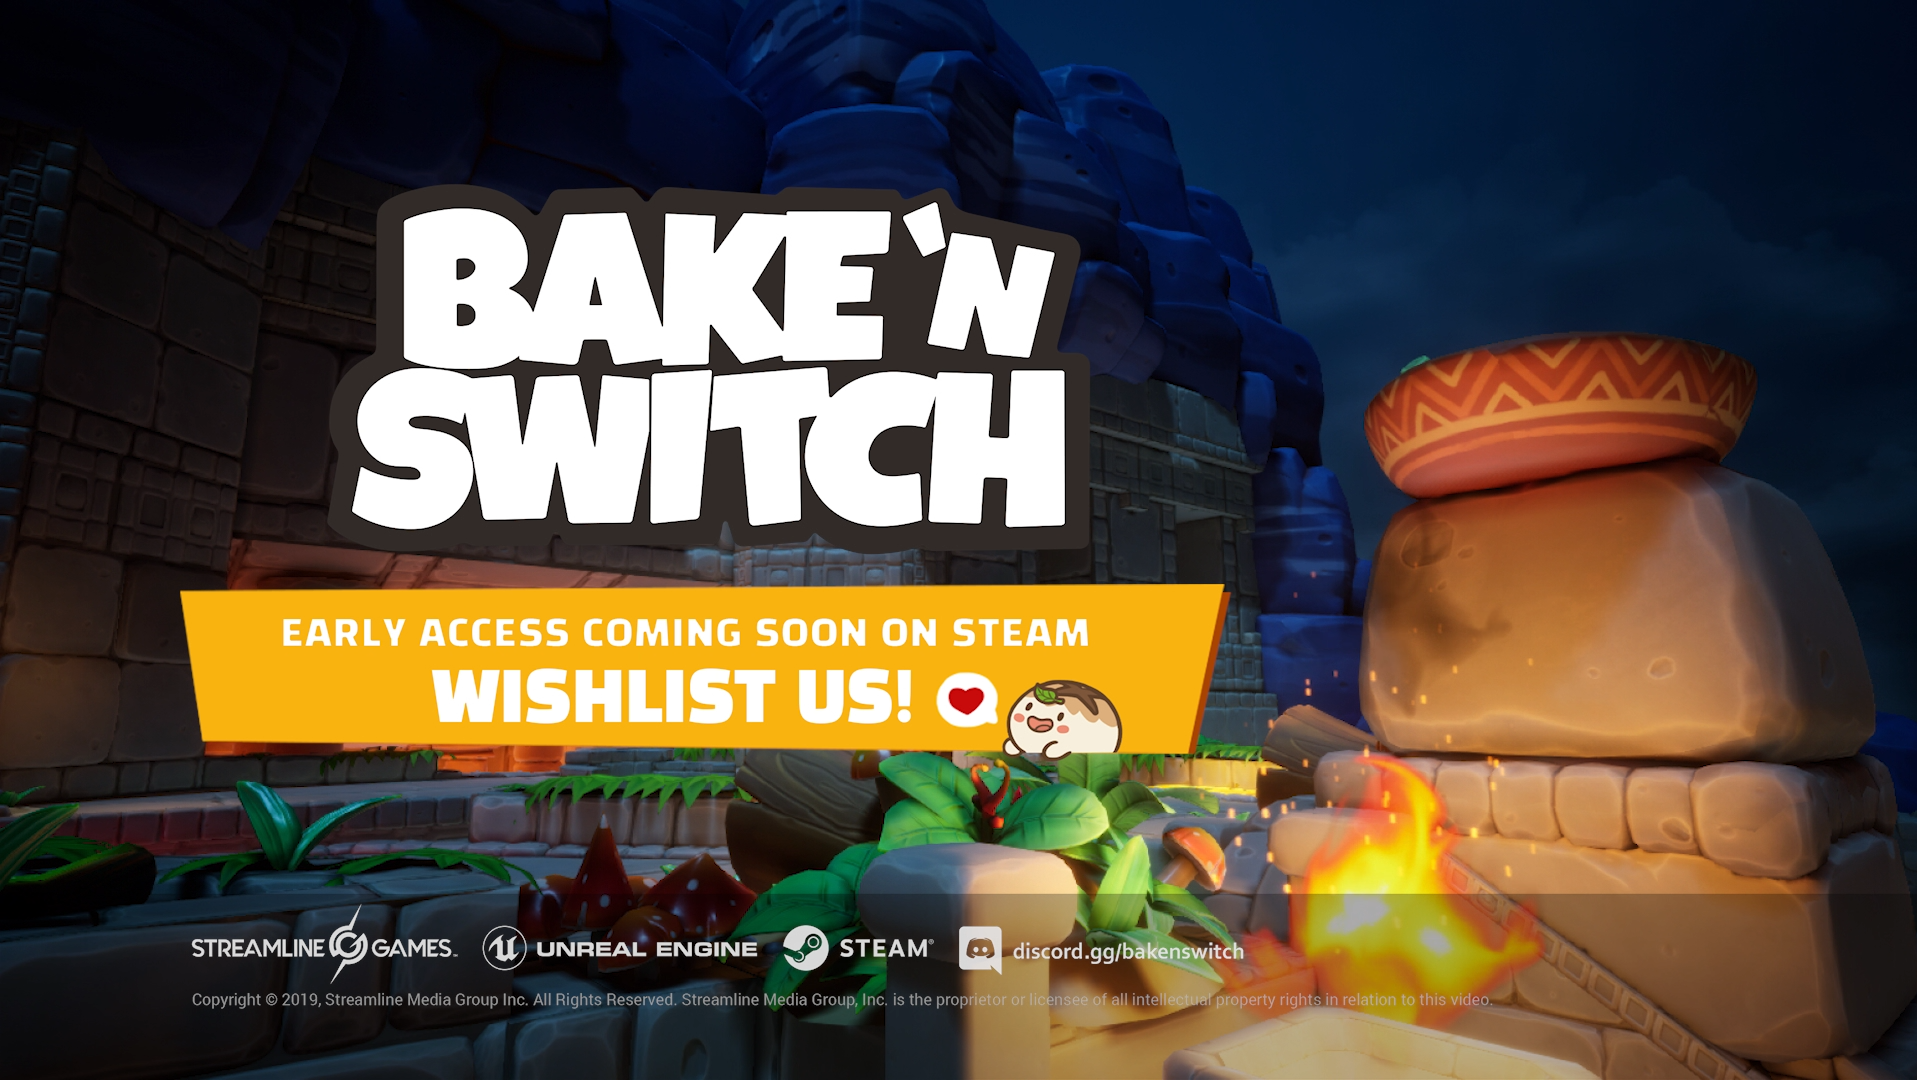 Adorable Dough Creatures Are in for a Bake-Em-Up Beating This Fall - Bake 'n Switch Hits Steam Early Access Later this Year